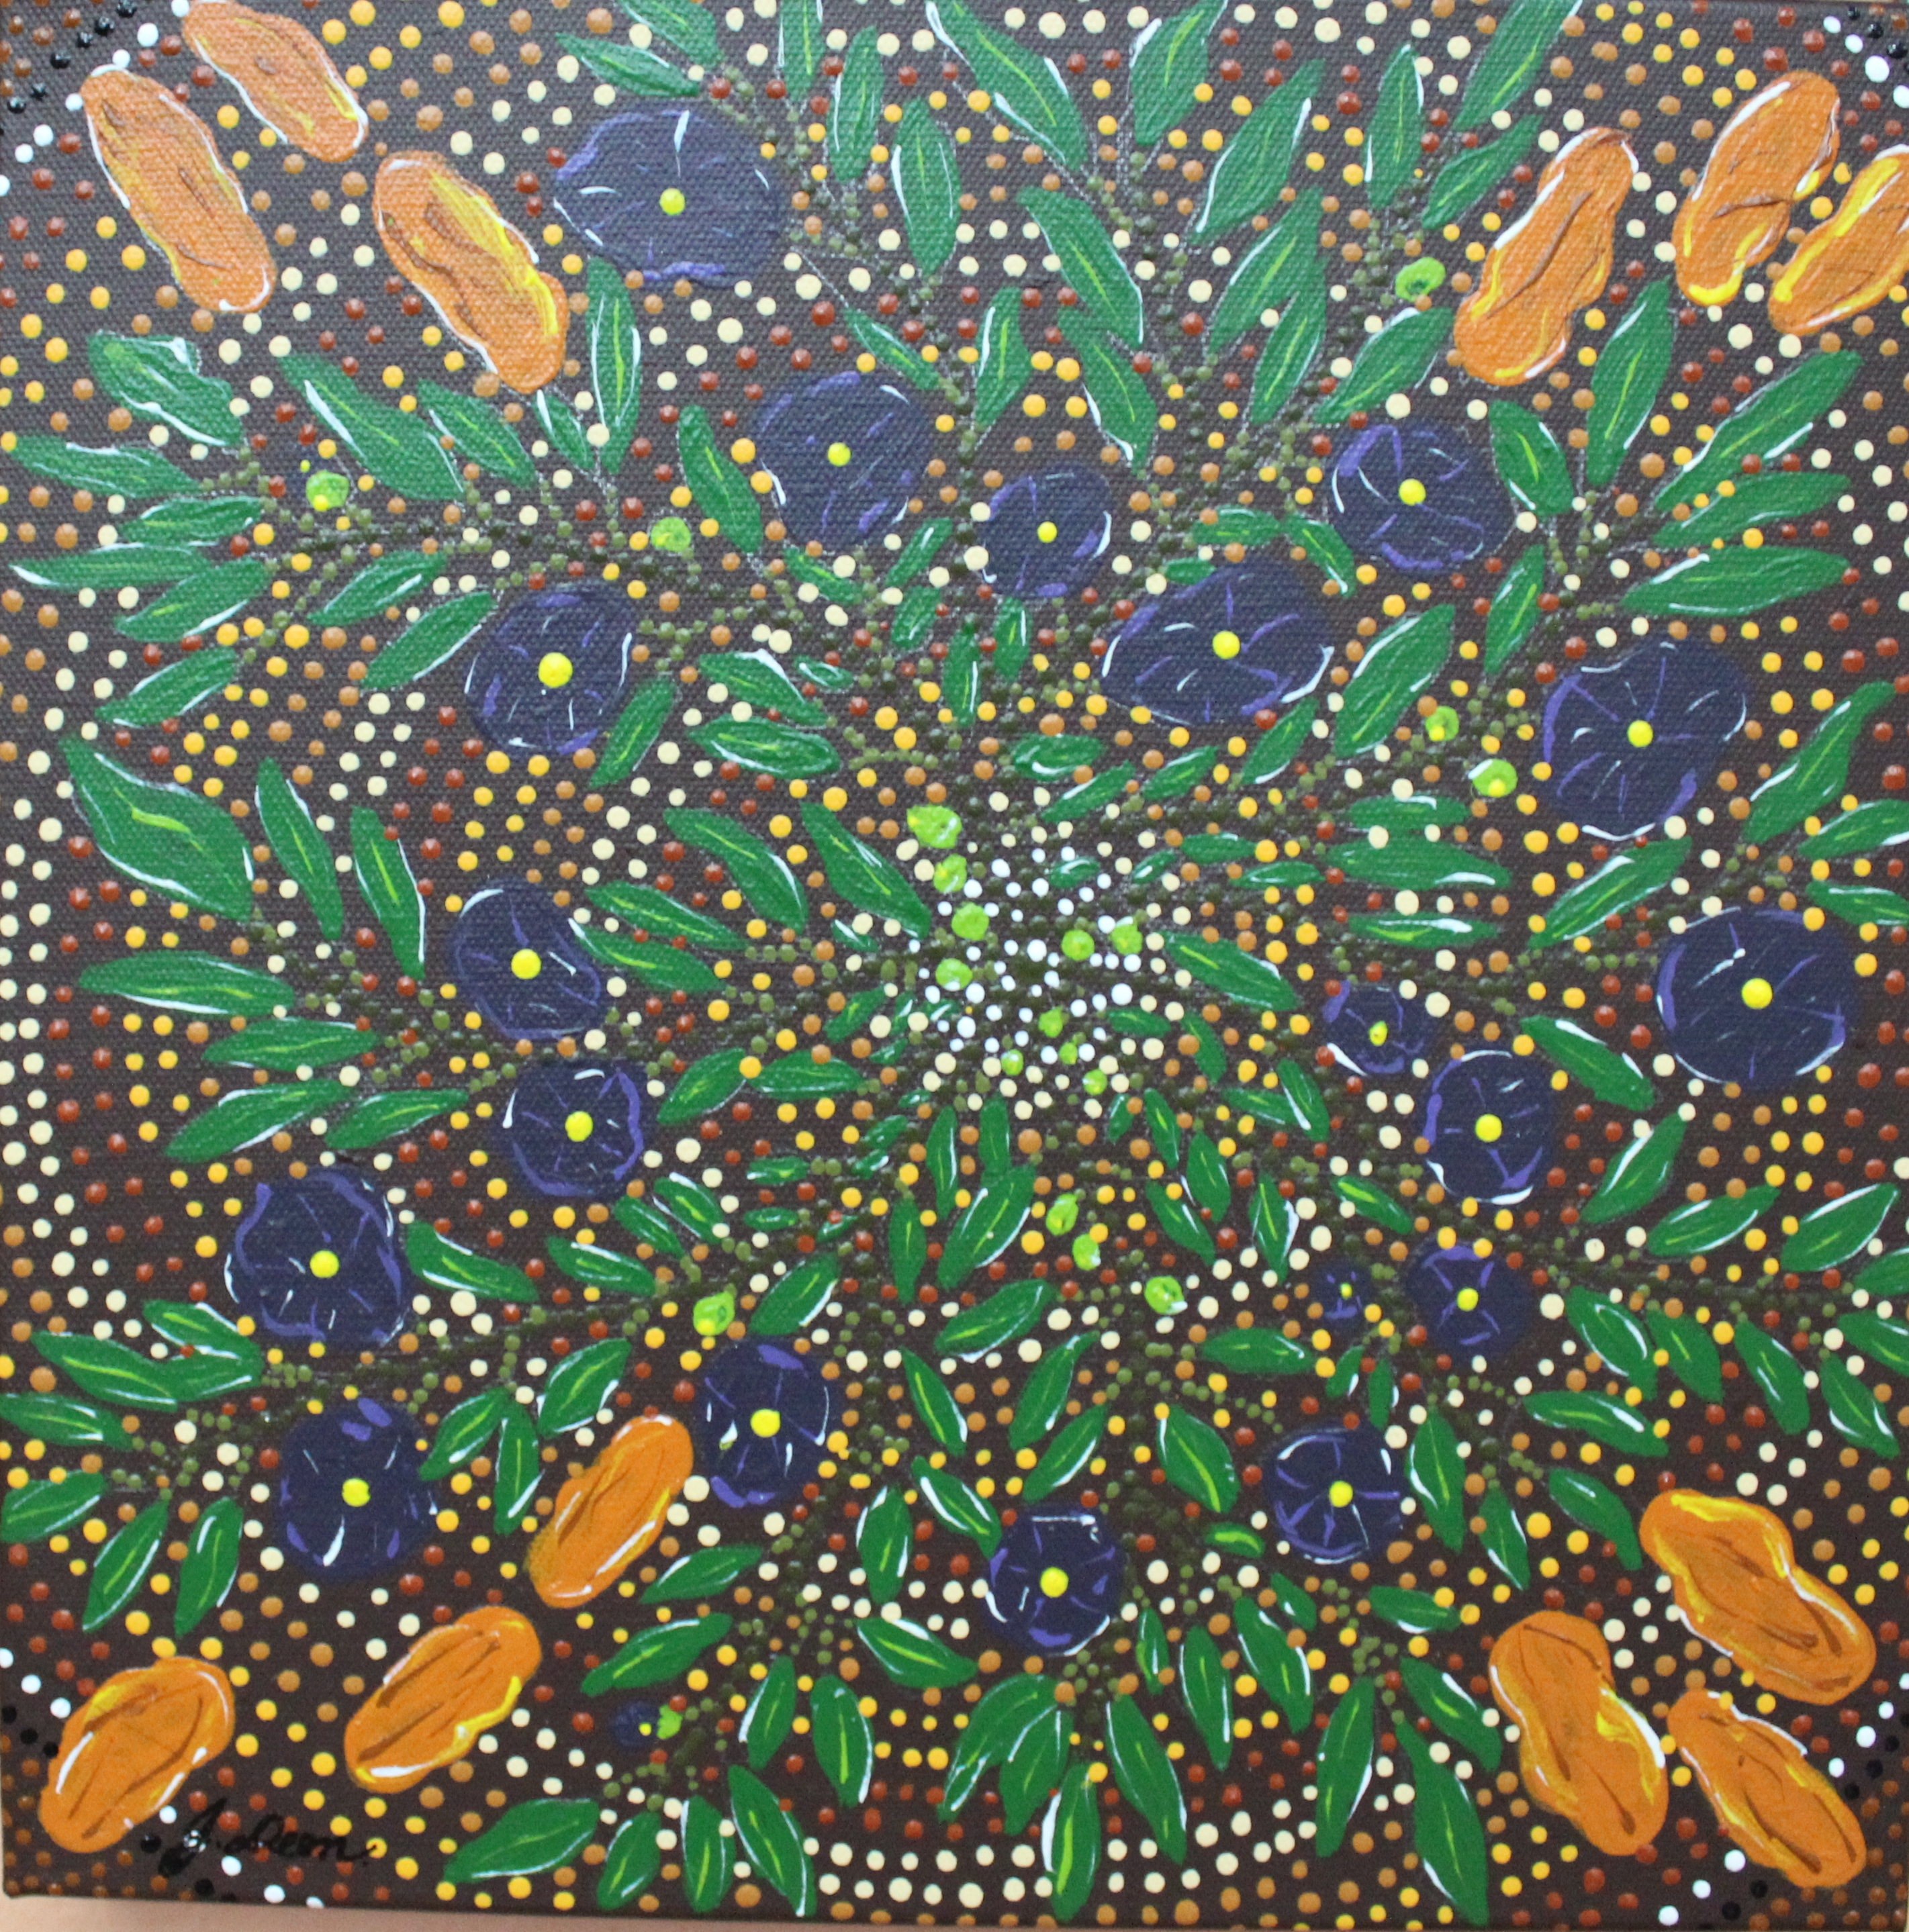 Art blog archives dnaag aboriginal art gallery i would like to wish all our artists and supporters of the gallery a very happy new year i personally am stepping down as gallery director and wish the solutioingenieria Image collections